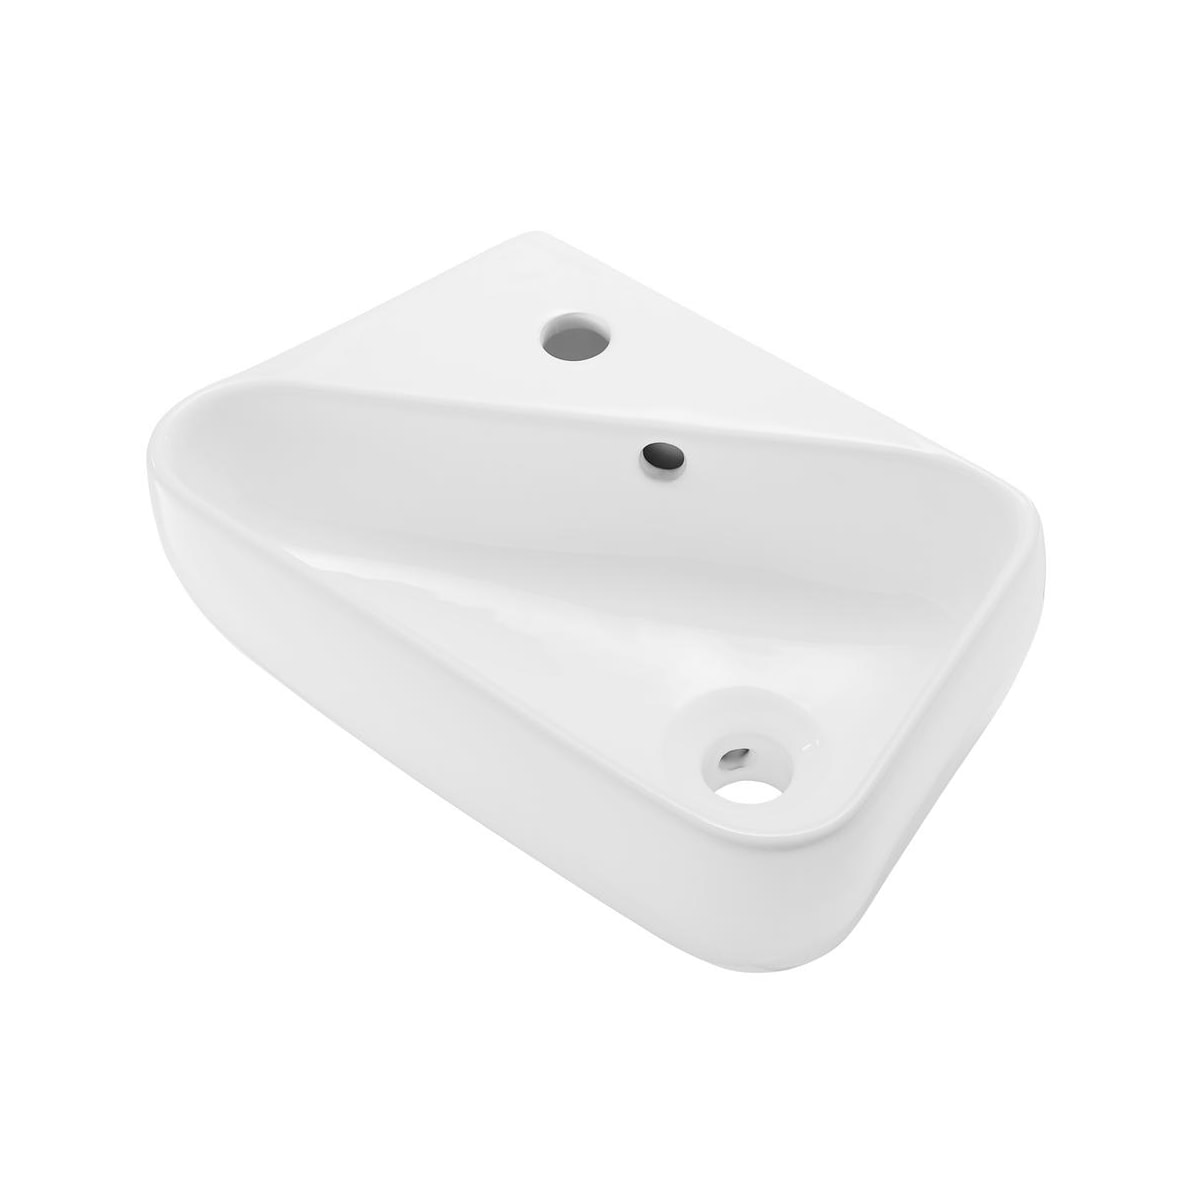 Swiss Madison Sm Ws314 Glossy White Plaisir 18 Rectangular Ceramic Wall Mounted Bathroom Sink With Overflow And 1 Faucet Hole Faucetdirect Com